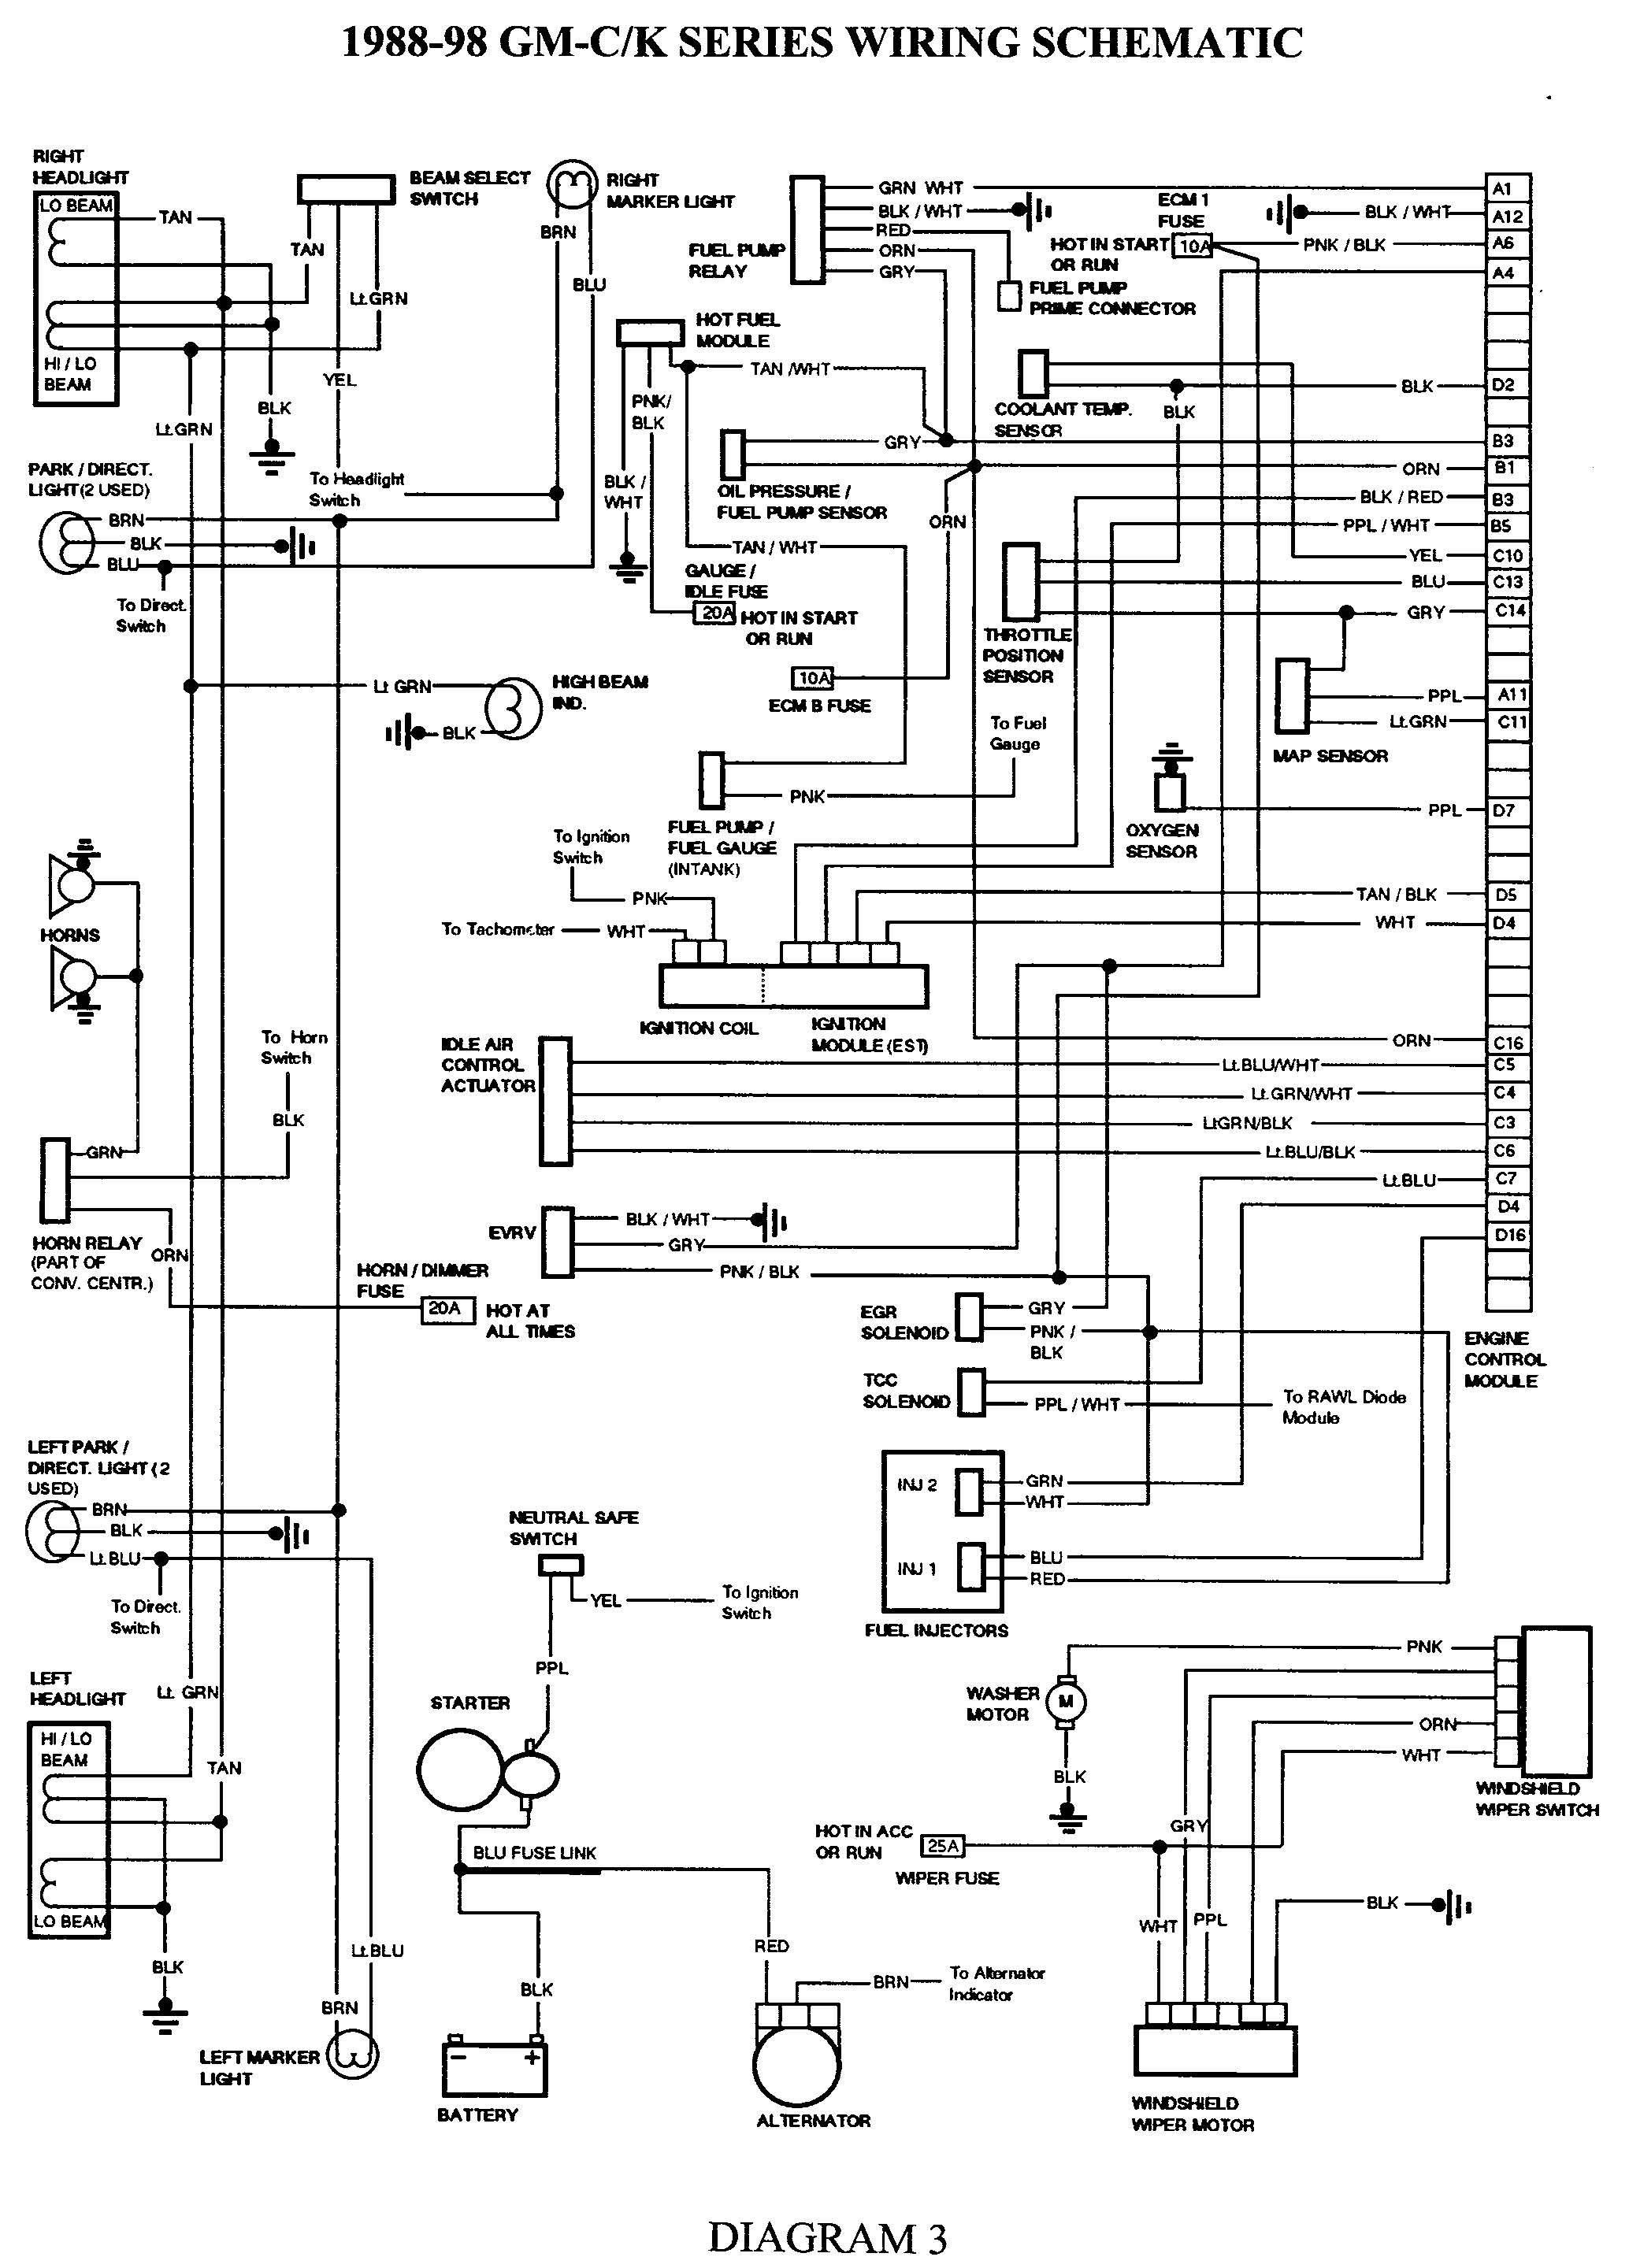 jeep howell fuel injection wiring diagram simple wiring diagrams 95 mitsubishi eclipse fuel injection wiring diagram howell fuel injection 350 wiring  [ 2068 x 2880 Pixel ]